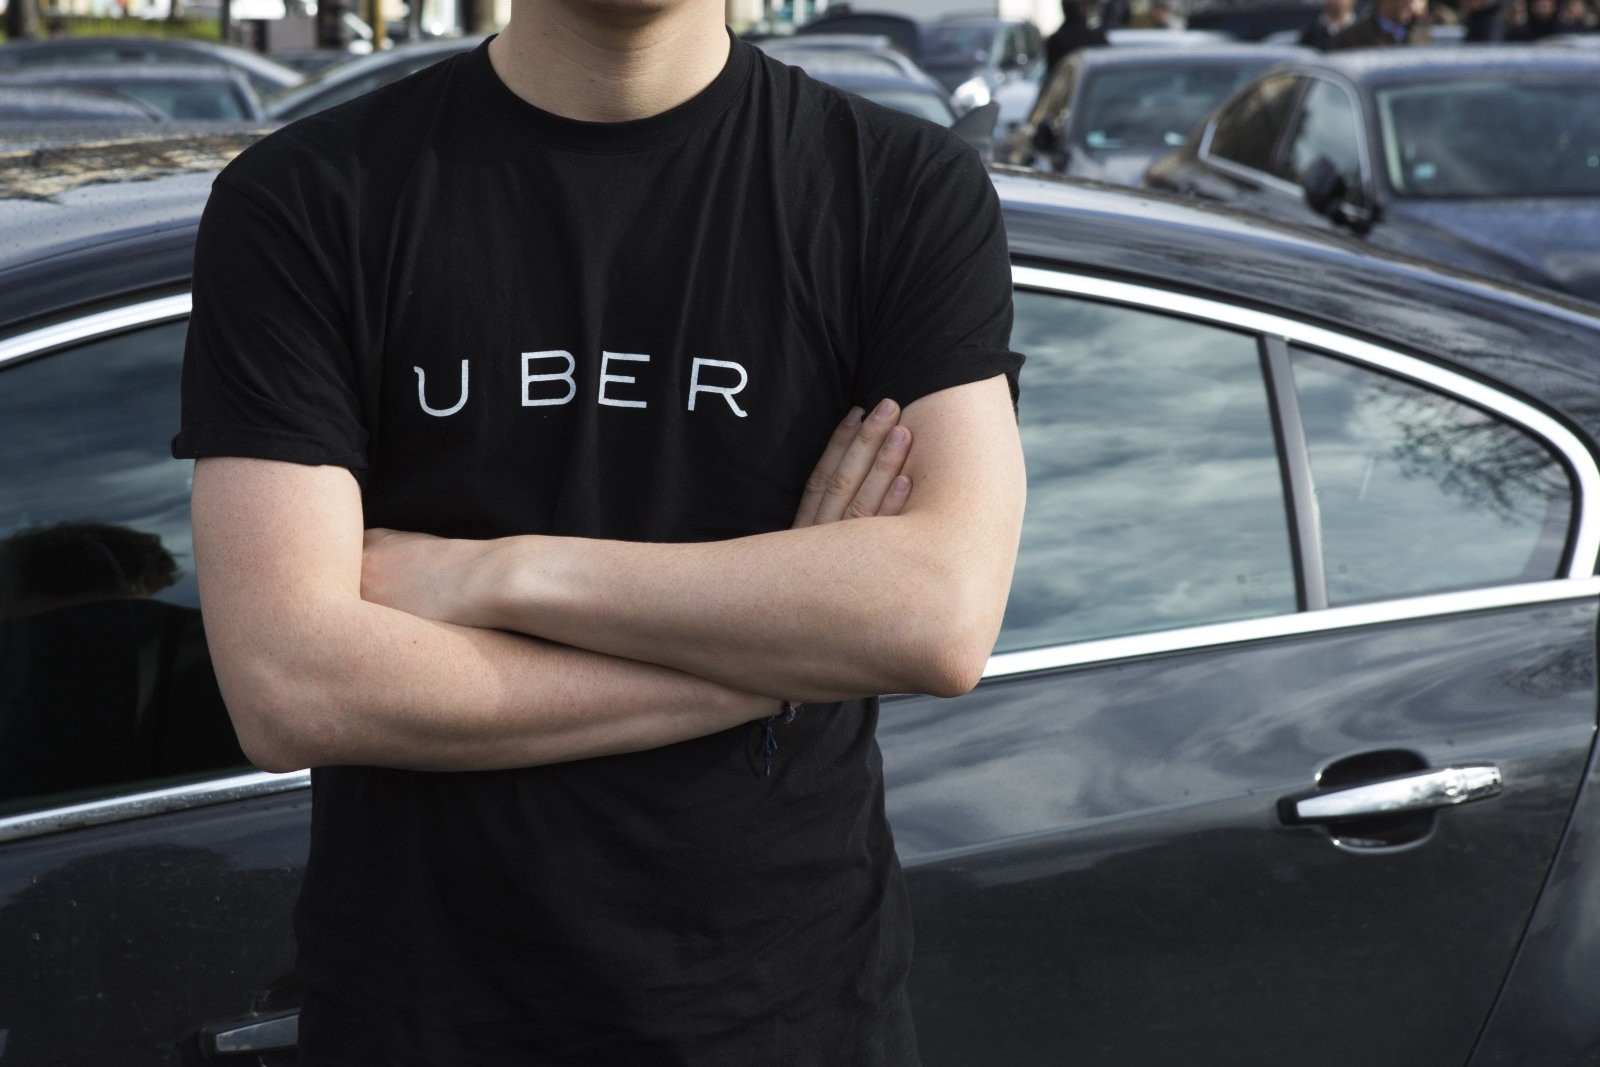 Living Stingy: Driving for Uber - A Real Job or Just Selling